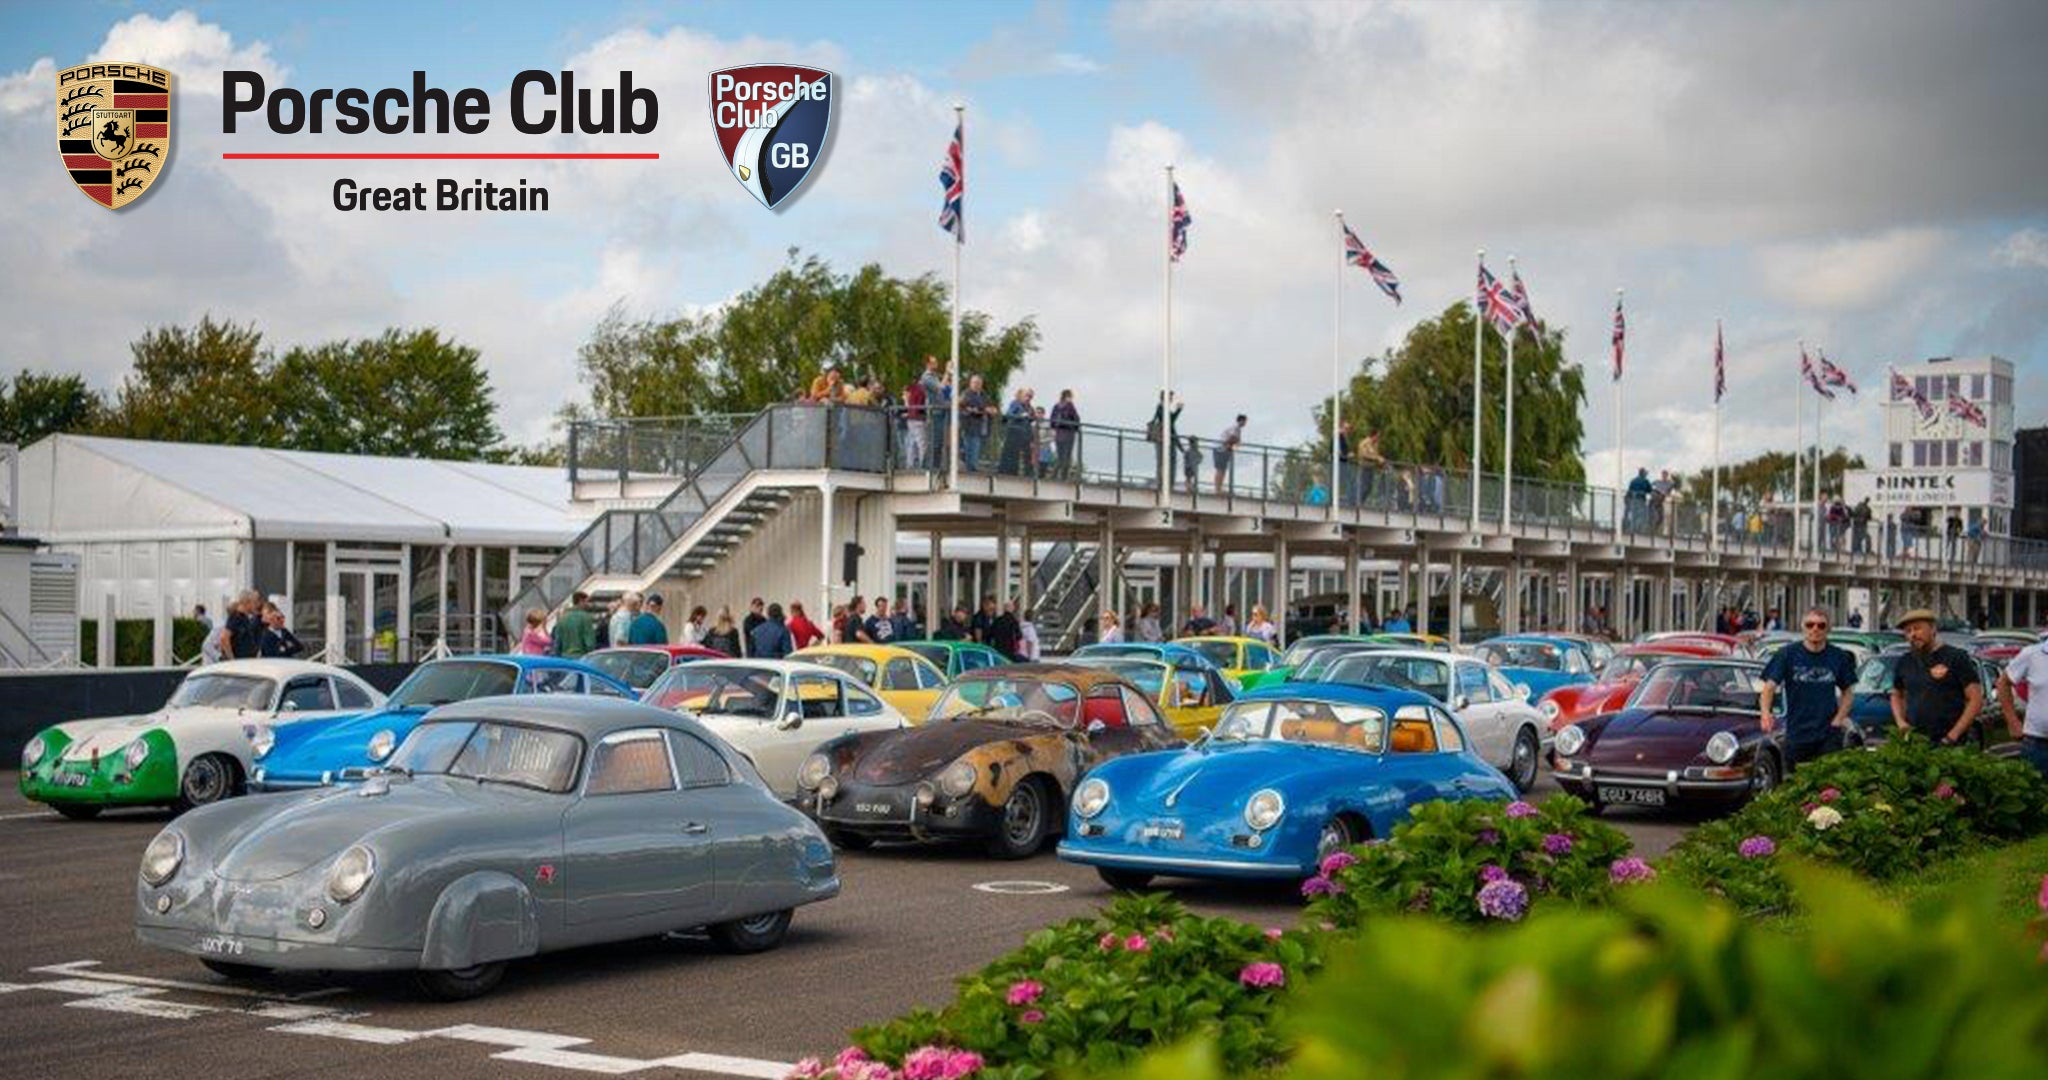 Porsche Club Great Britain - Cool Flo Partner